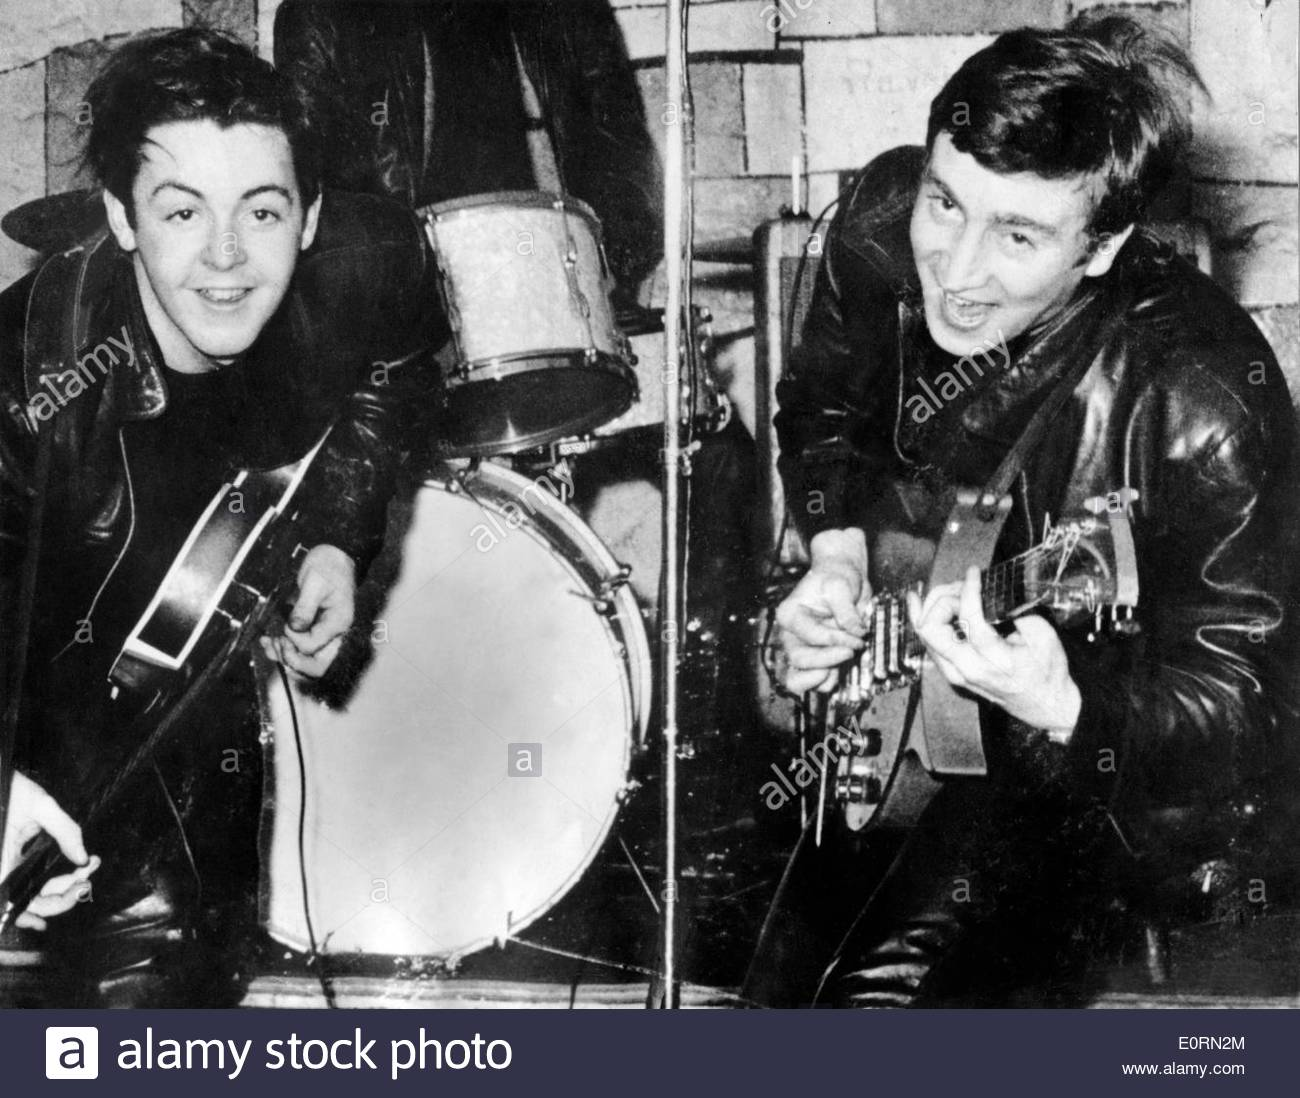 Paul McCartney And John Lennon During At Concert The Cavern Club